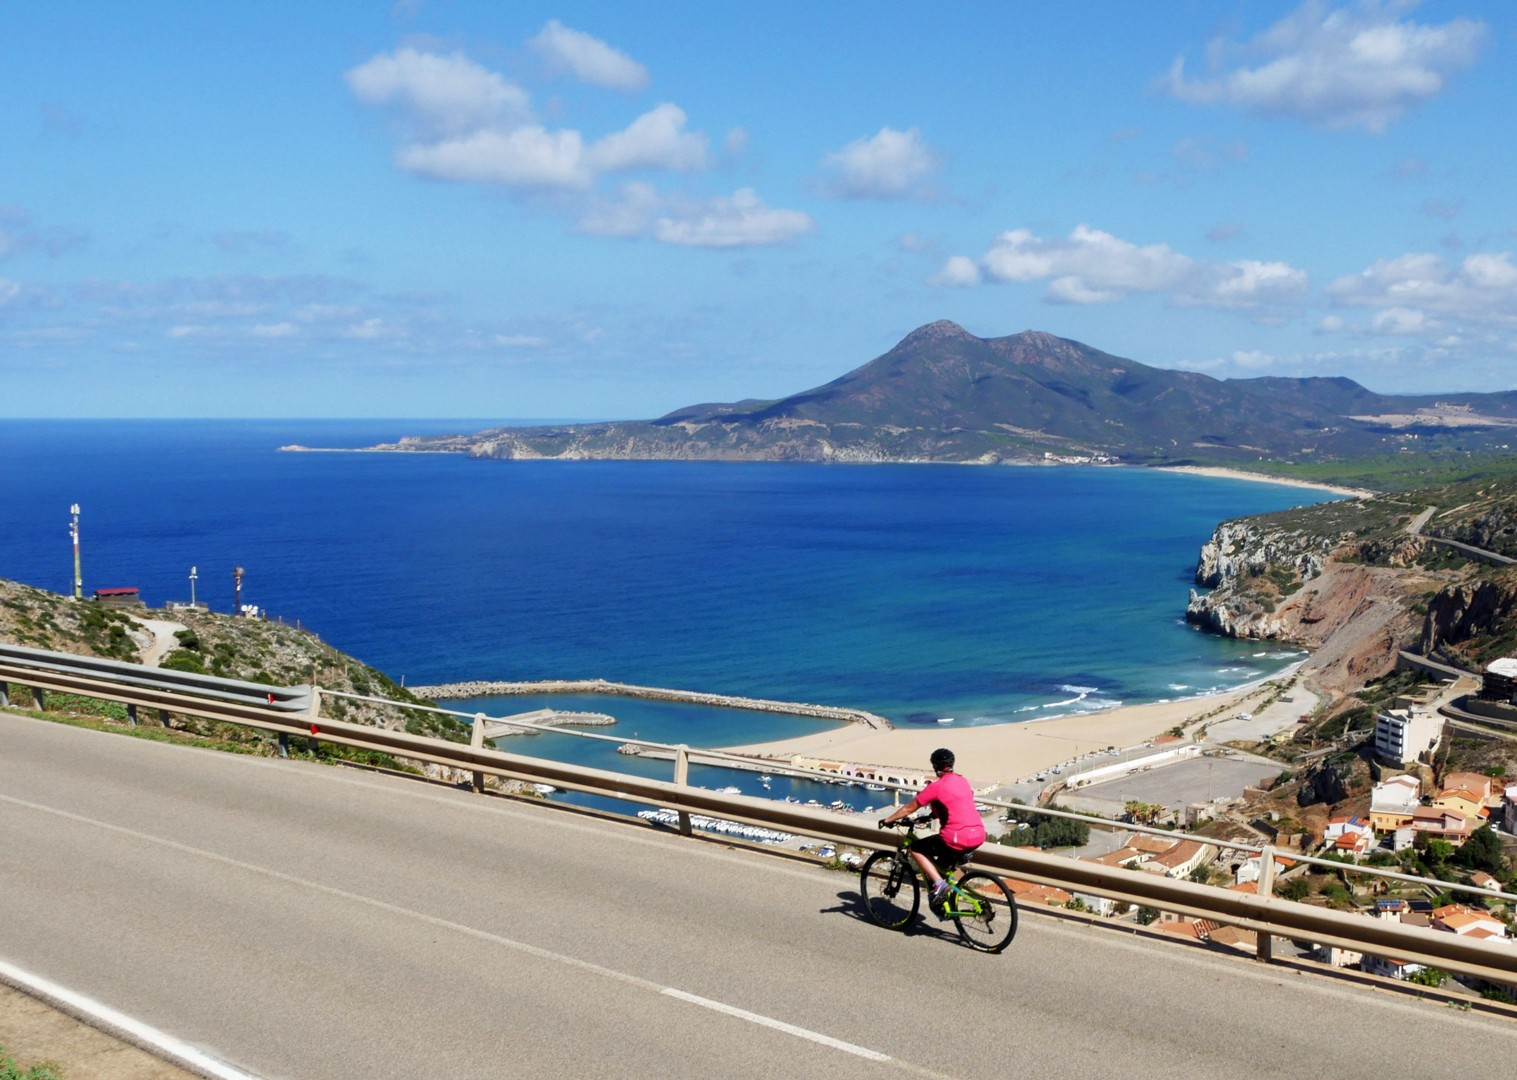 sardinia-island-cycling-holiday.jpg - Italy - Sardinia - Island Flavours - Guided Leisure Cycling Holiday - Italia Leisure and Family Cycling